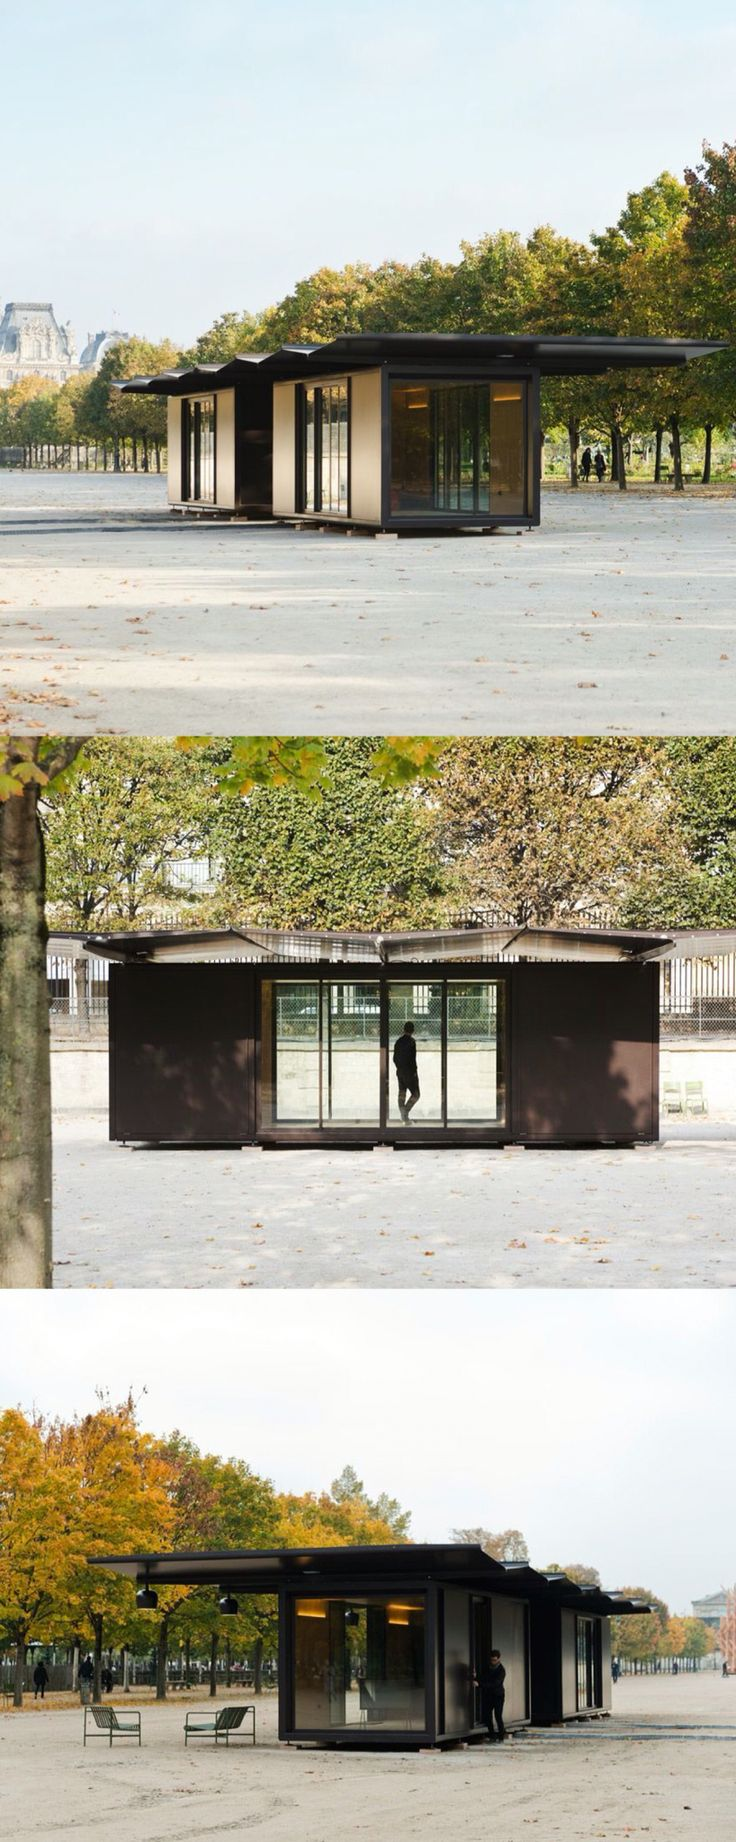 kiosque installation at the jardin des tuileries by ronan and erwan bouroullec pavilion